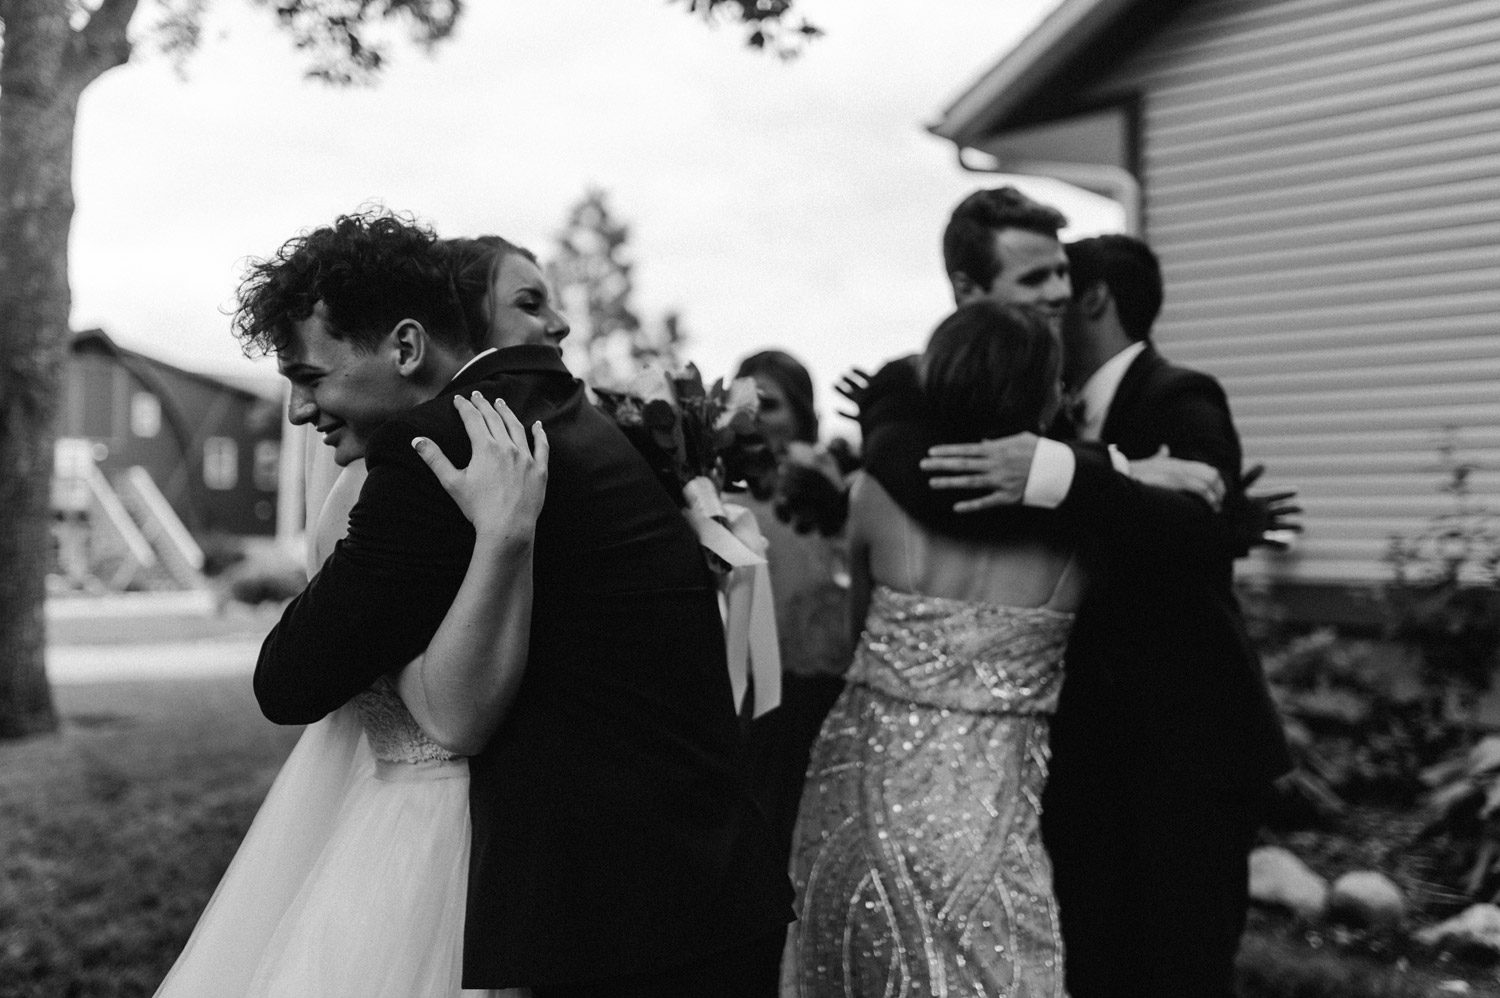 candid of bride and groom celebrating with friends and family after ceremony by geneoh photography